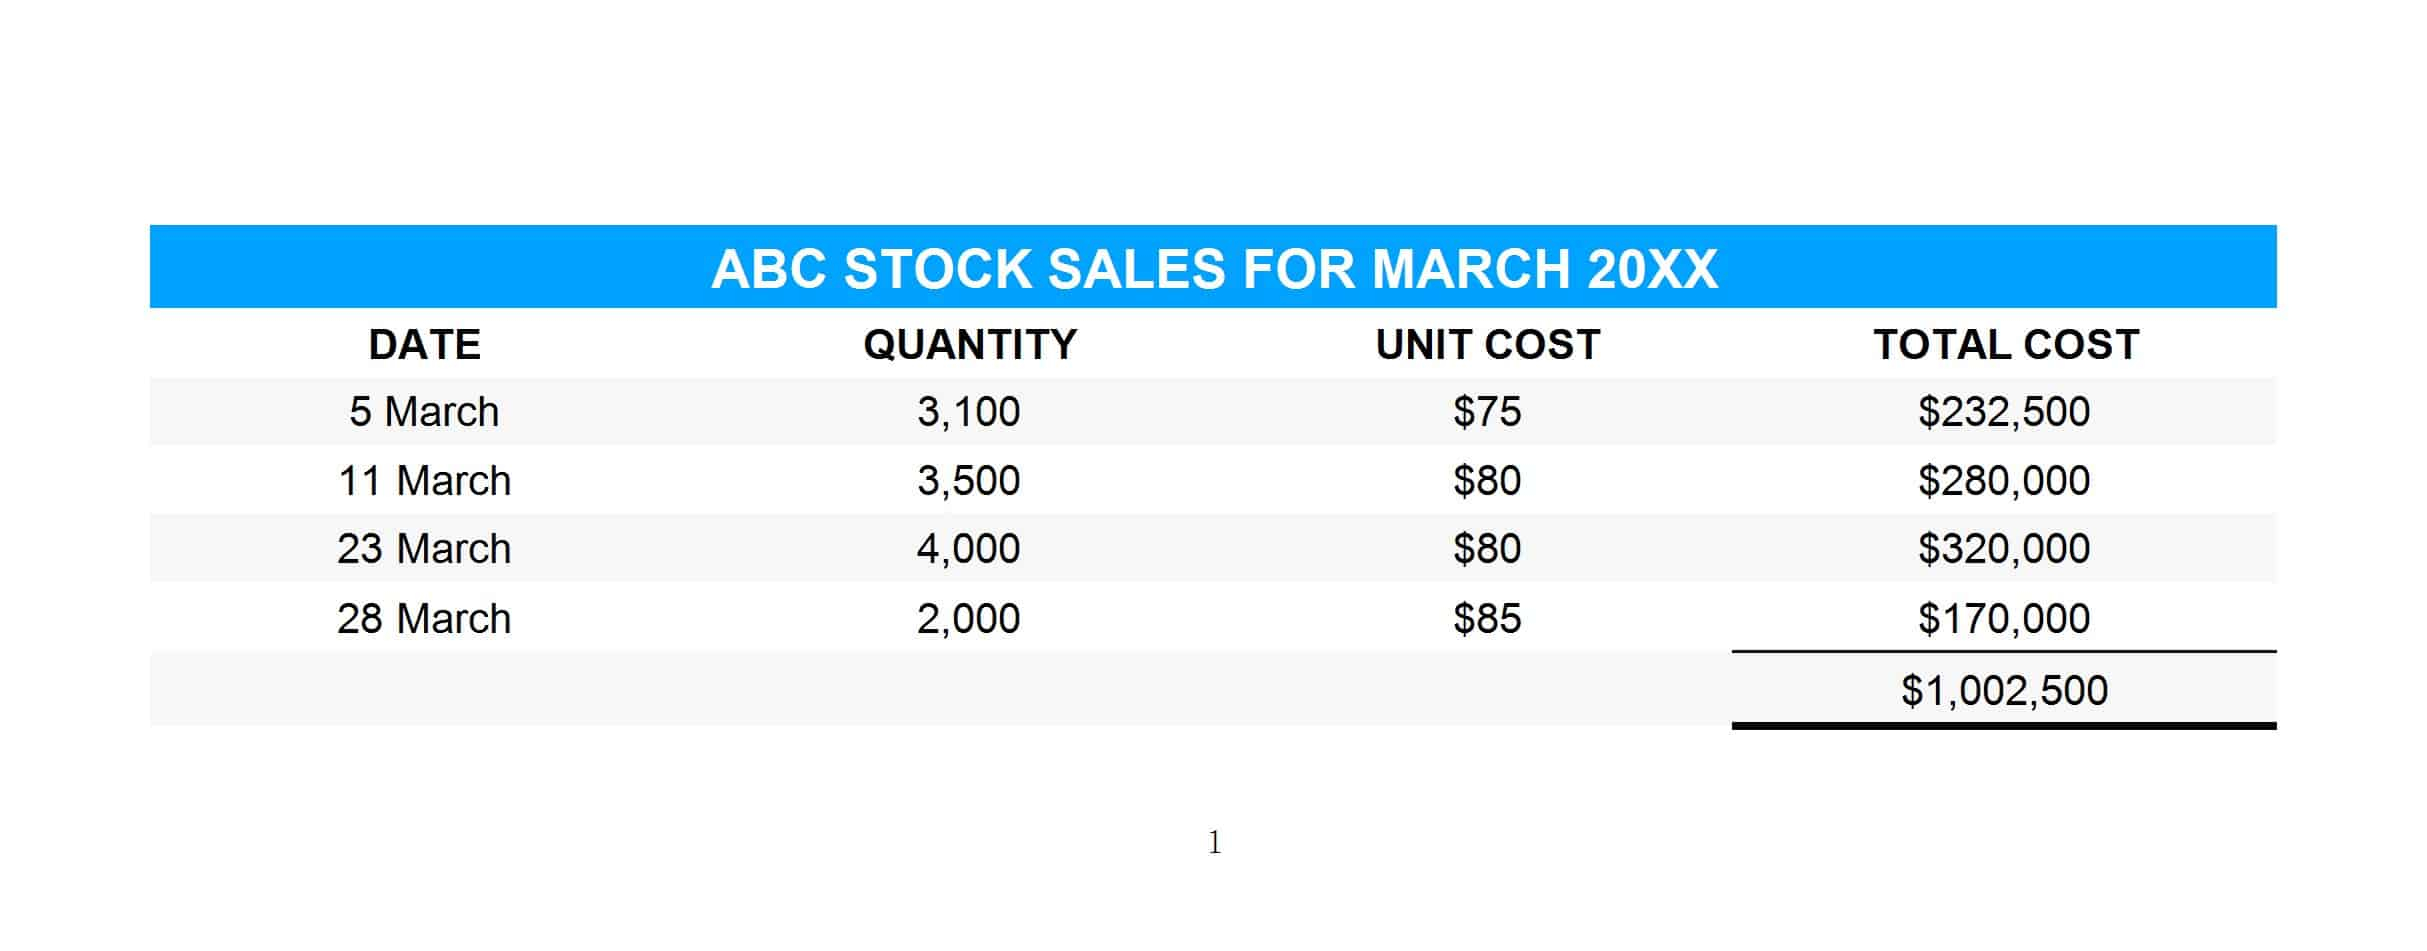 ABC sales for the month of March 20XX.